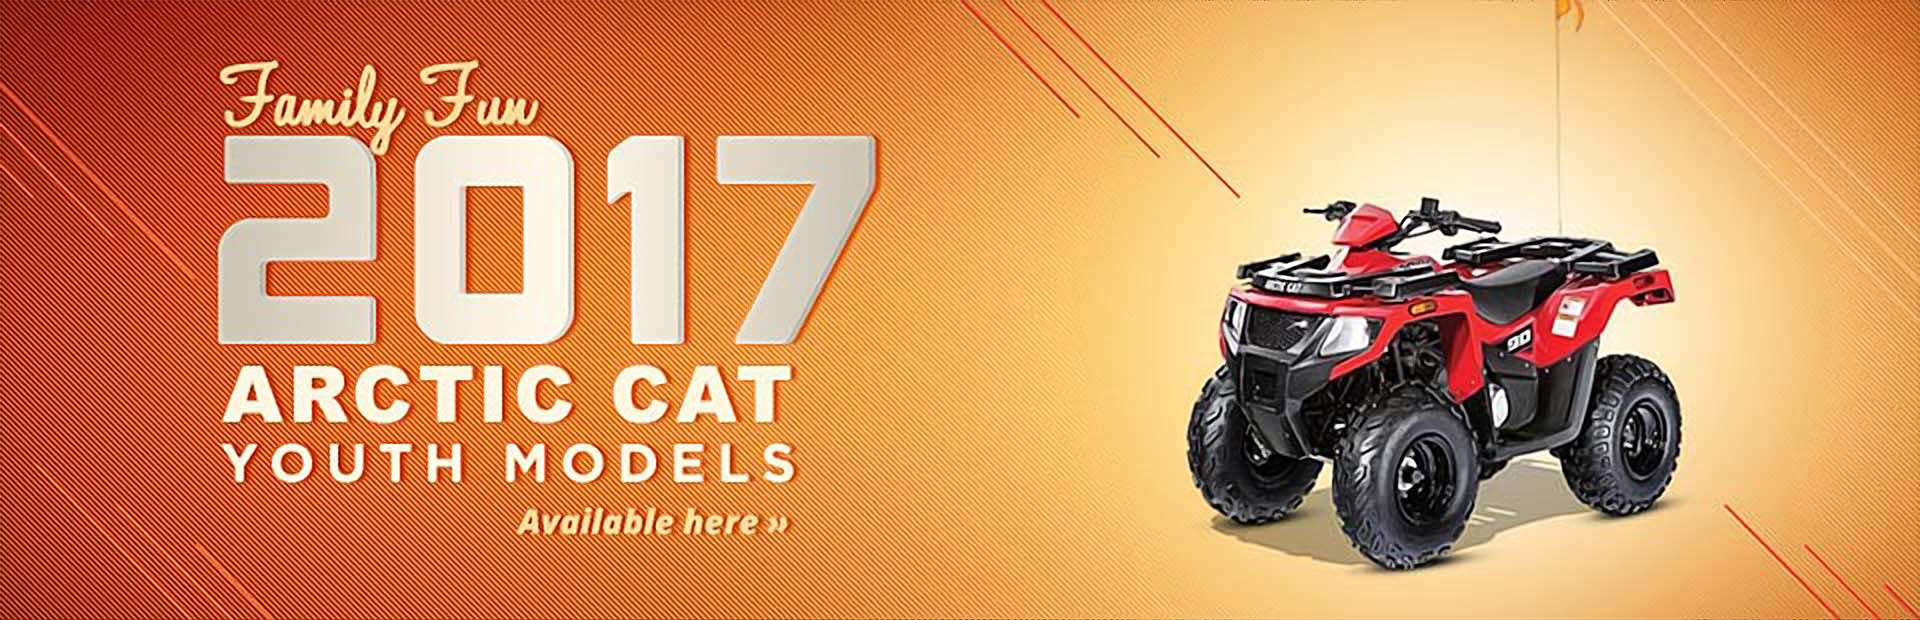 Click here to view our selection of 2017 Arctic Cat youth models!